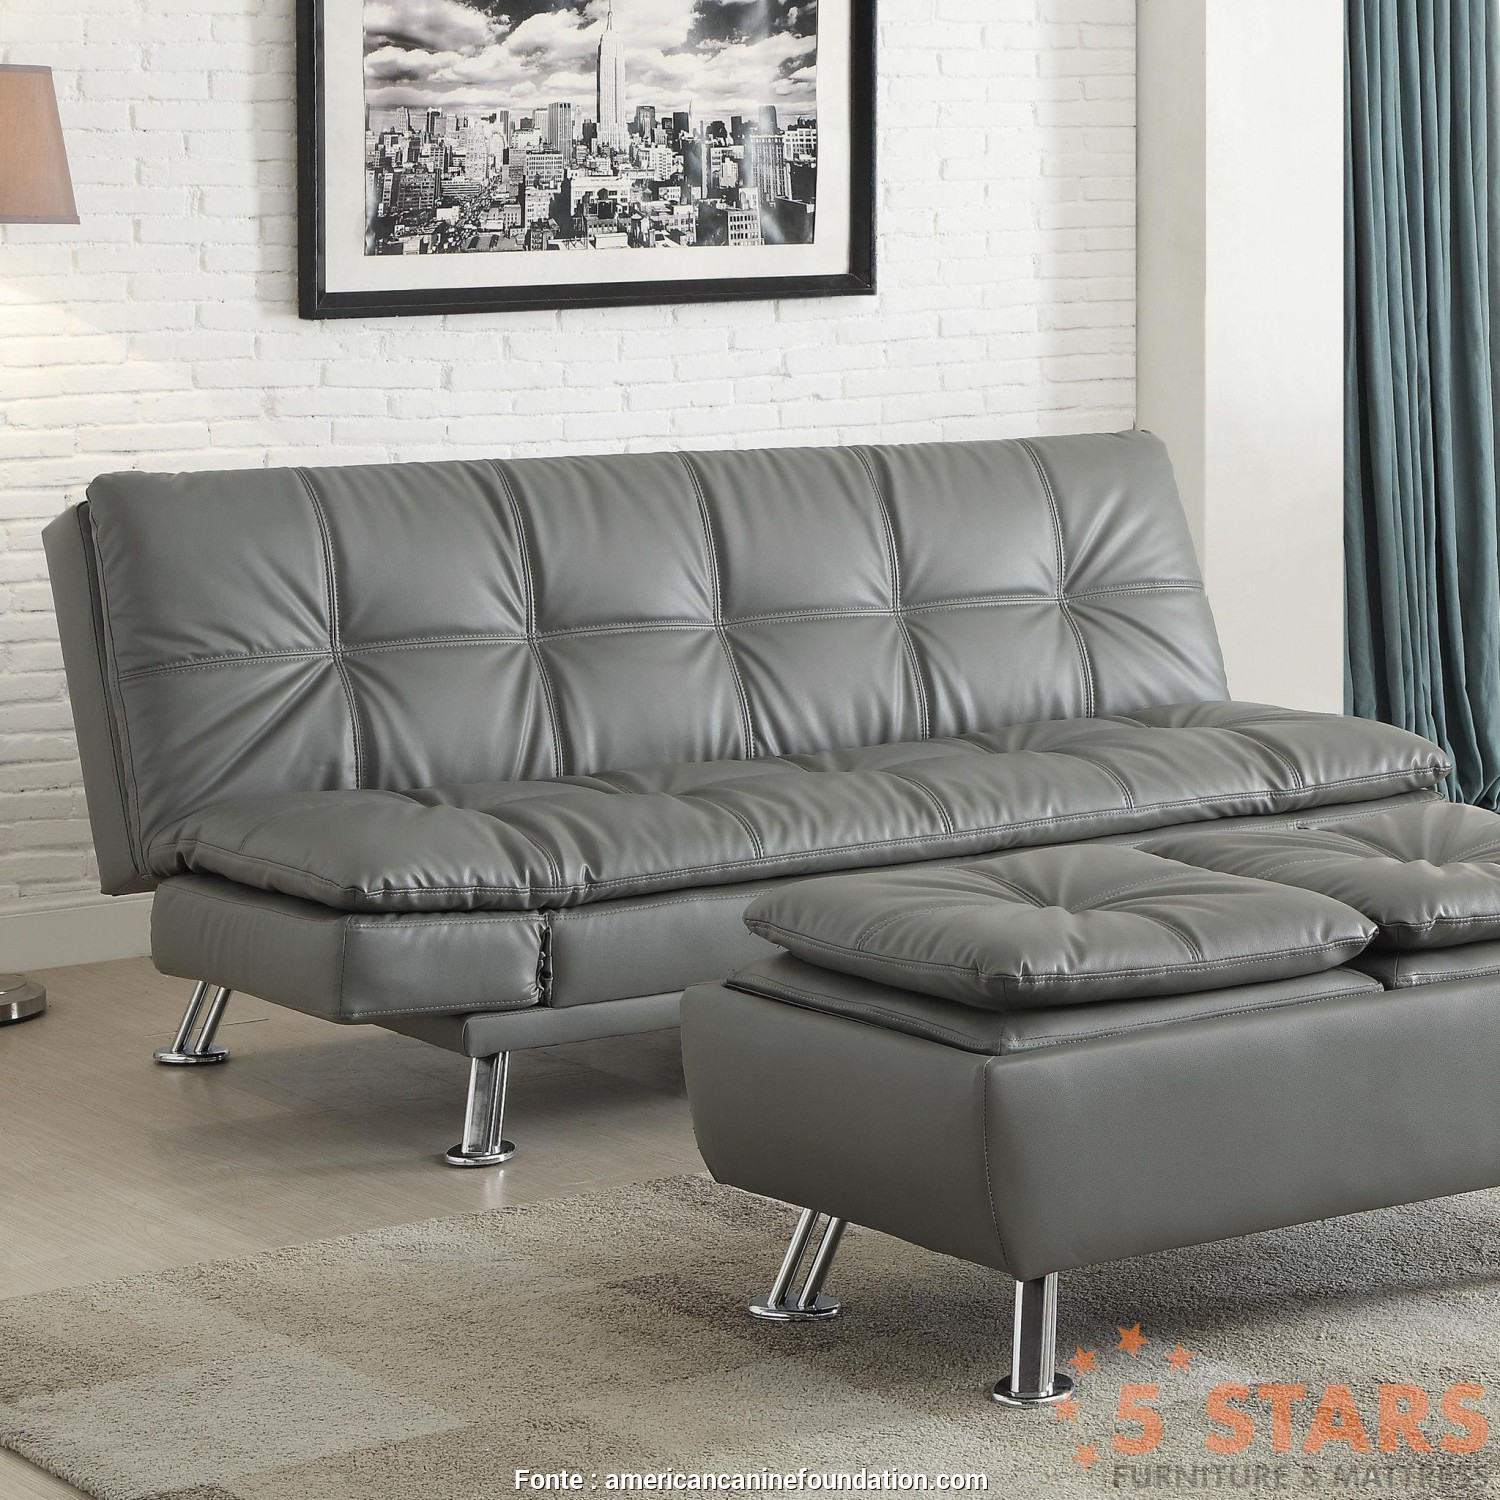 Grankulla Ikea Prix, Bellissima Interesting Futons Ikea, Modern Family Room Ideas: Interesting Futons Ikea With Futon Ikea Grankulla